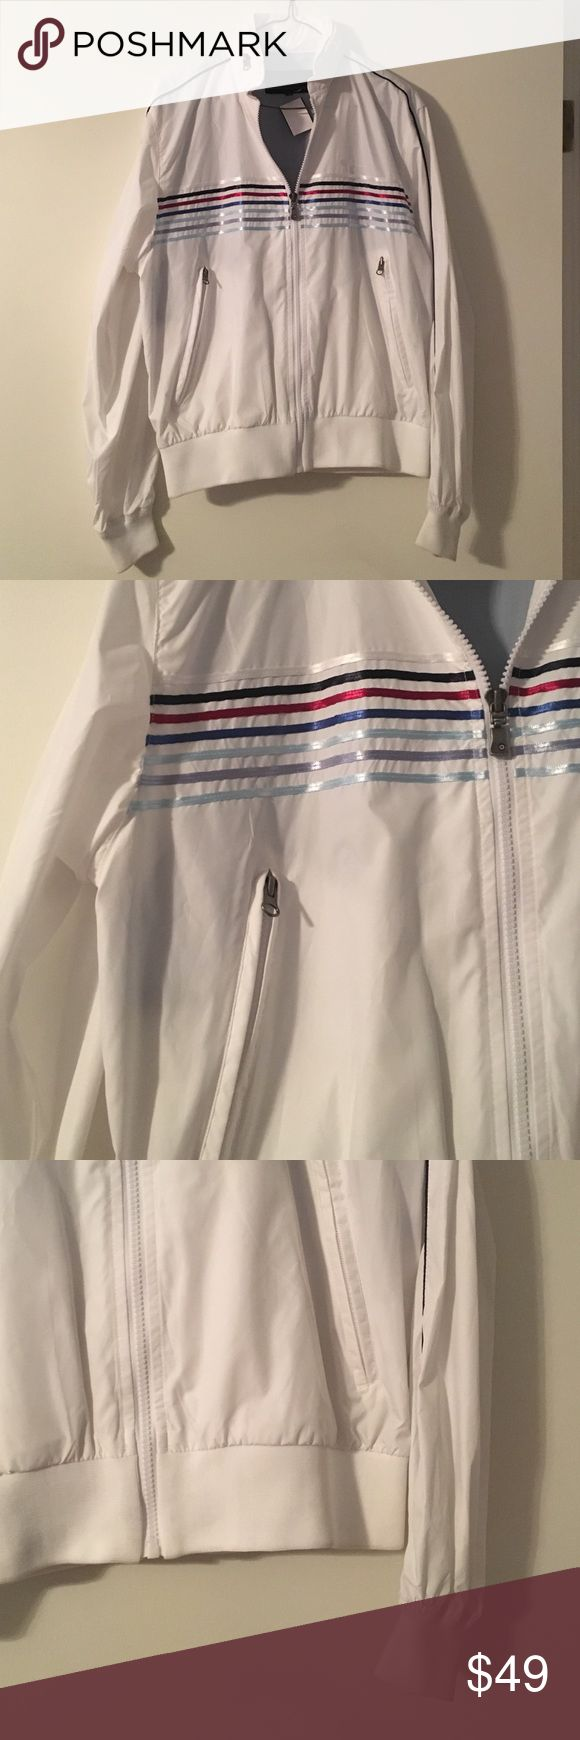 BEN SHERMAN: white windbreaker size small in excellent condition! no major flaws Ben Sherman Jackets & Coats Windbreakers